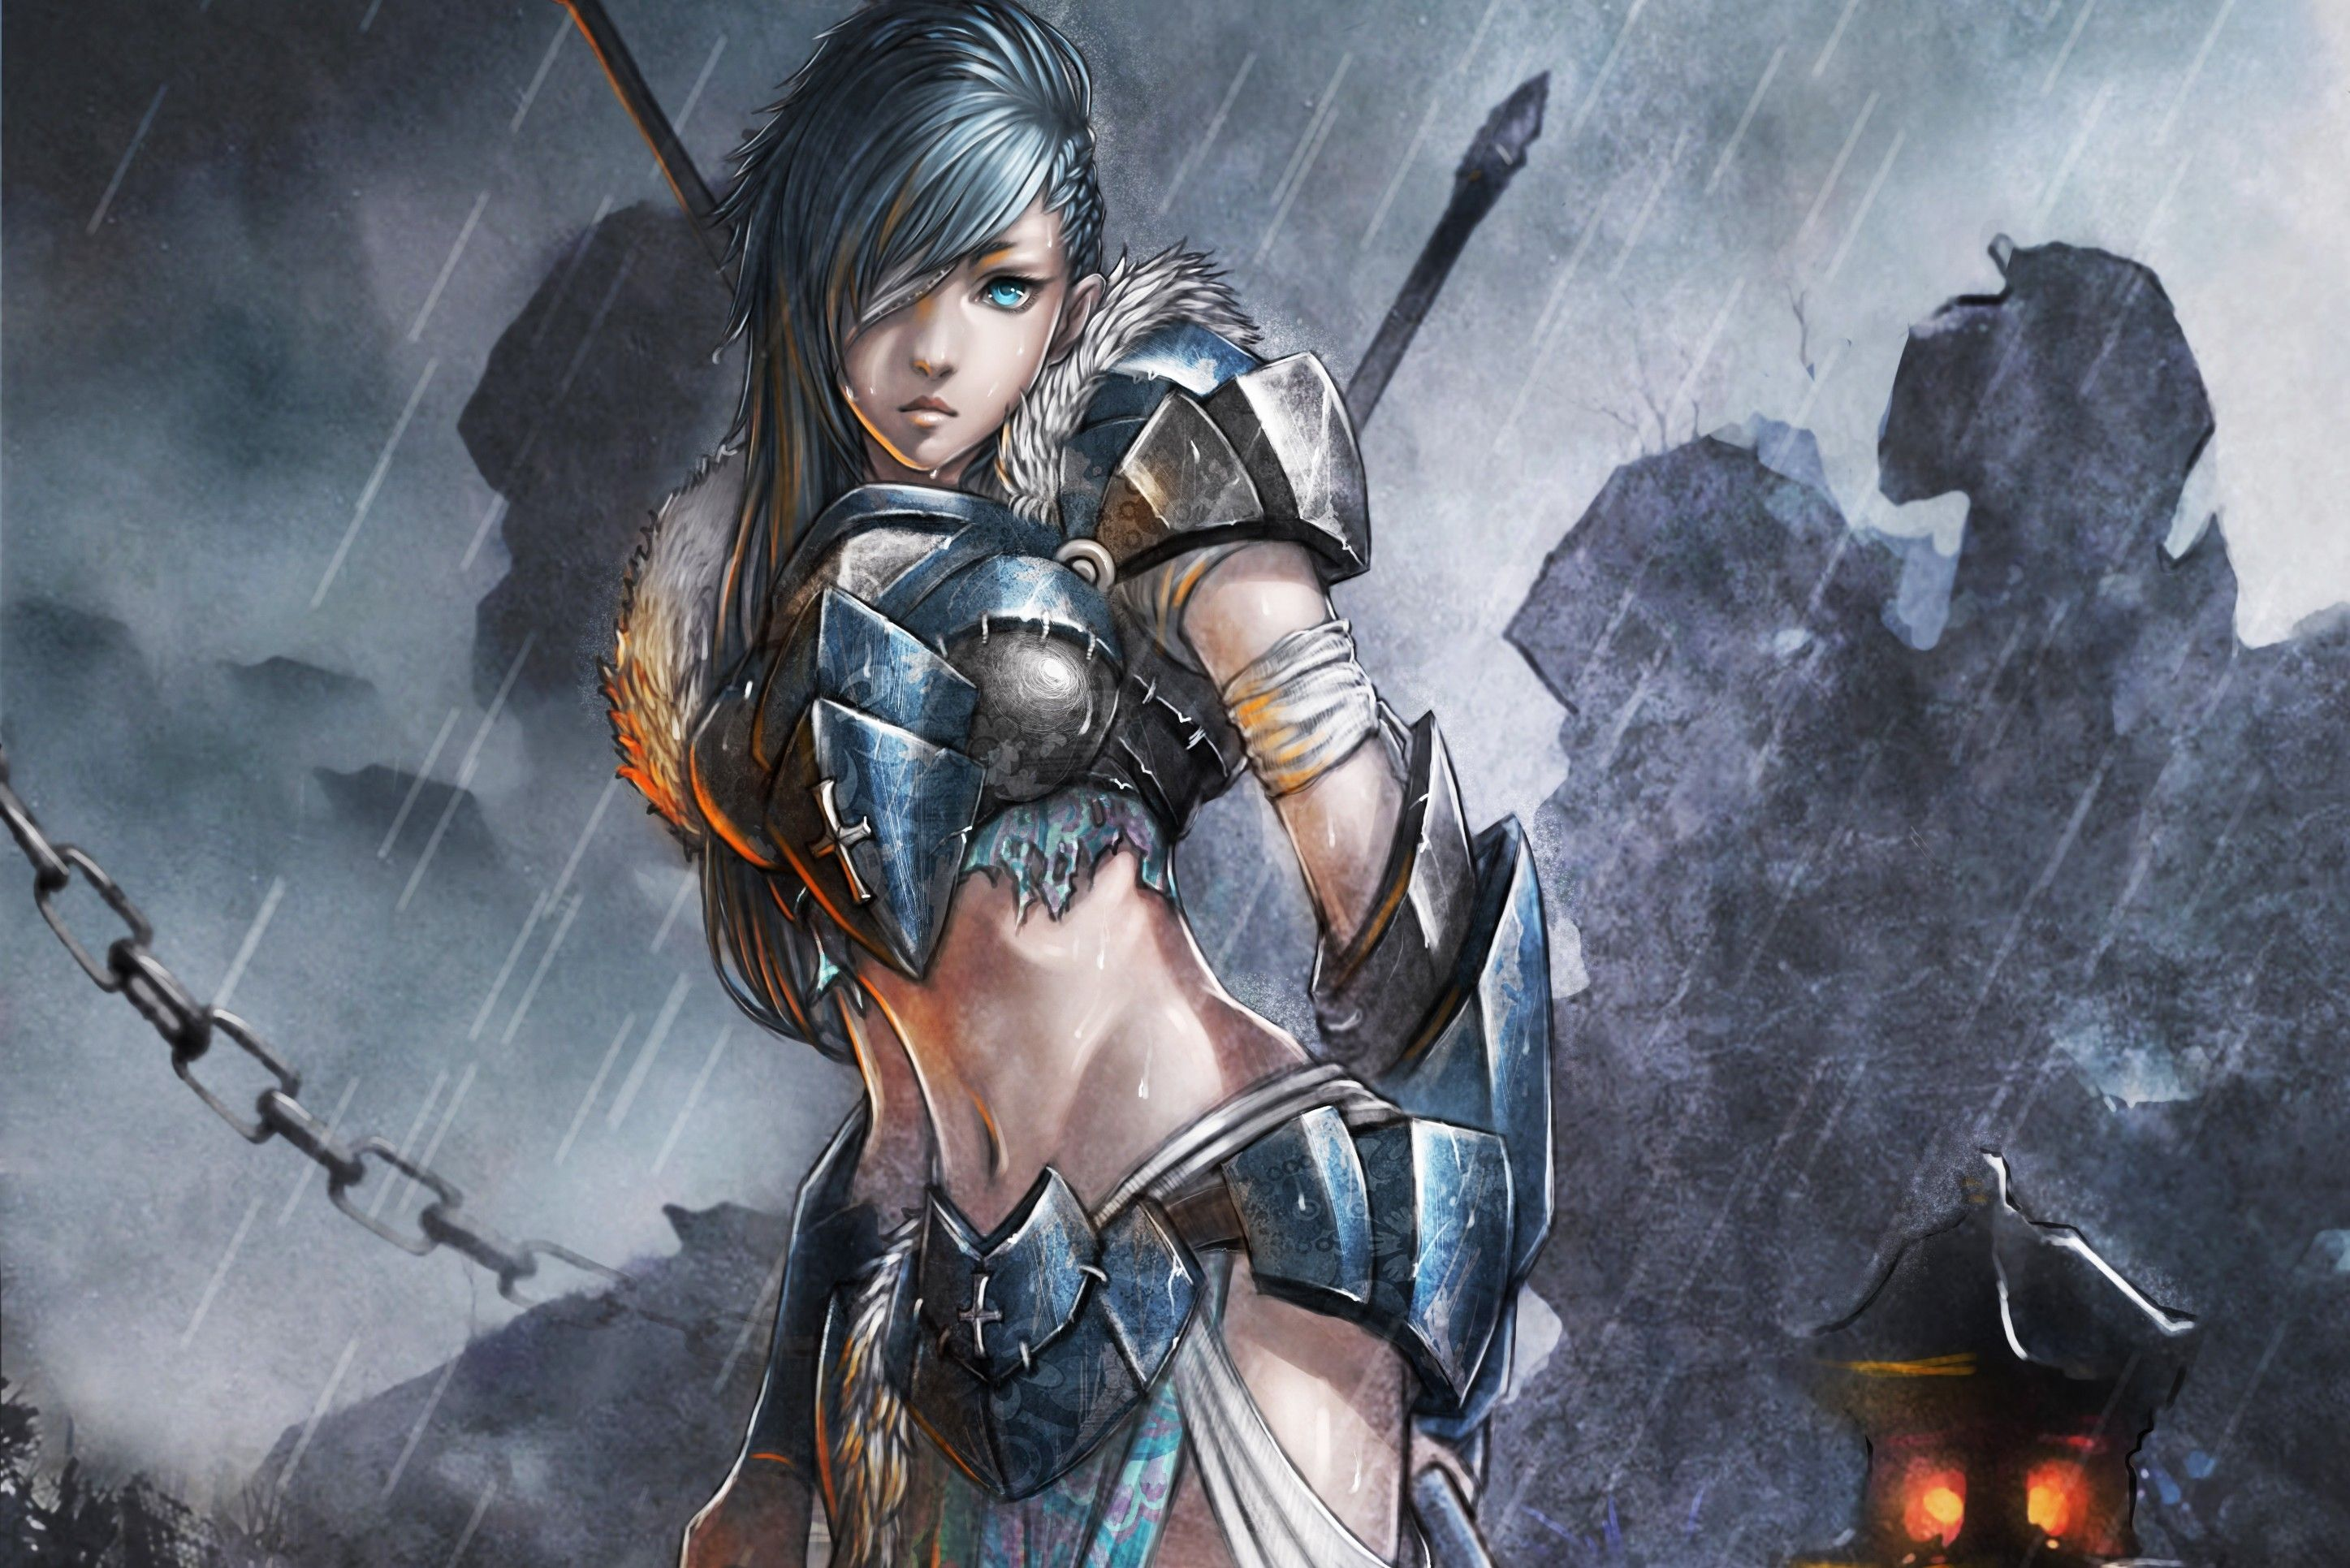 2894x1931 1185 Women Warrior HD Wallpapers   Background Images - Wallpaper Abyss